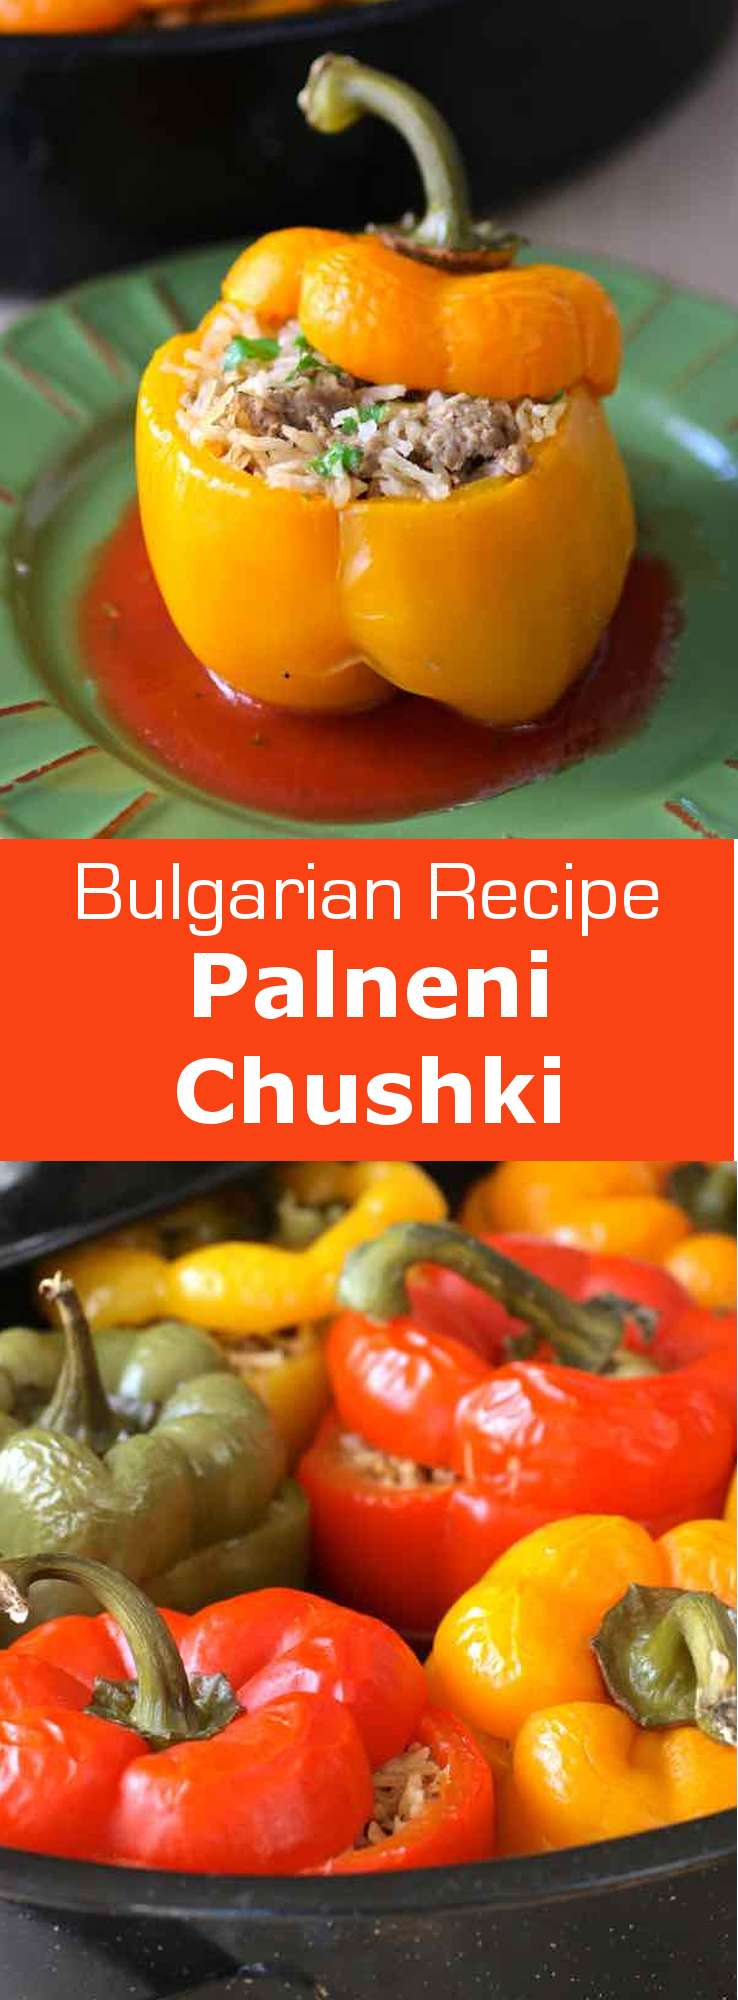 Palneni chushki is the Bulgarian version of the stuffed bell pepper recipe, a dish that is popular throughout Europe and other countries over the world. #Bulgaria #196flavors